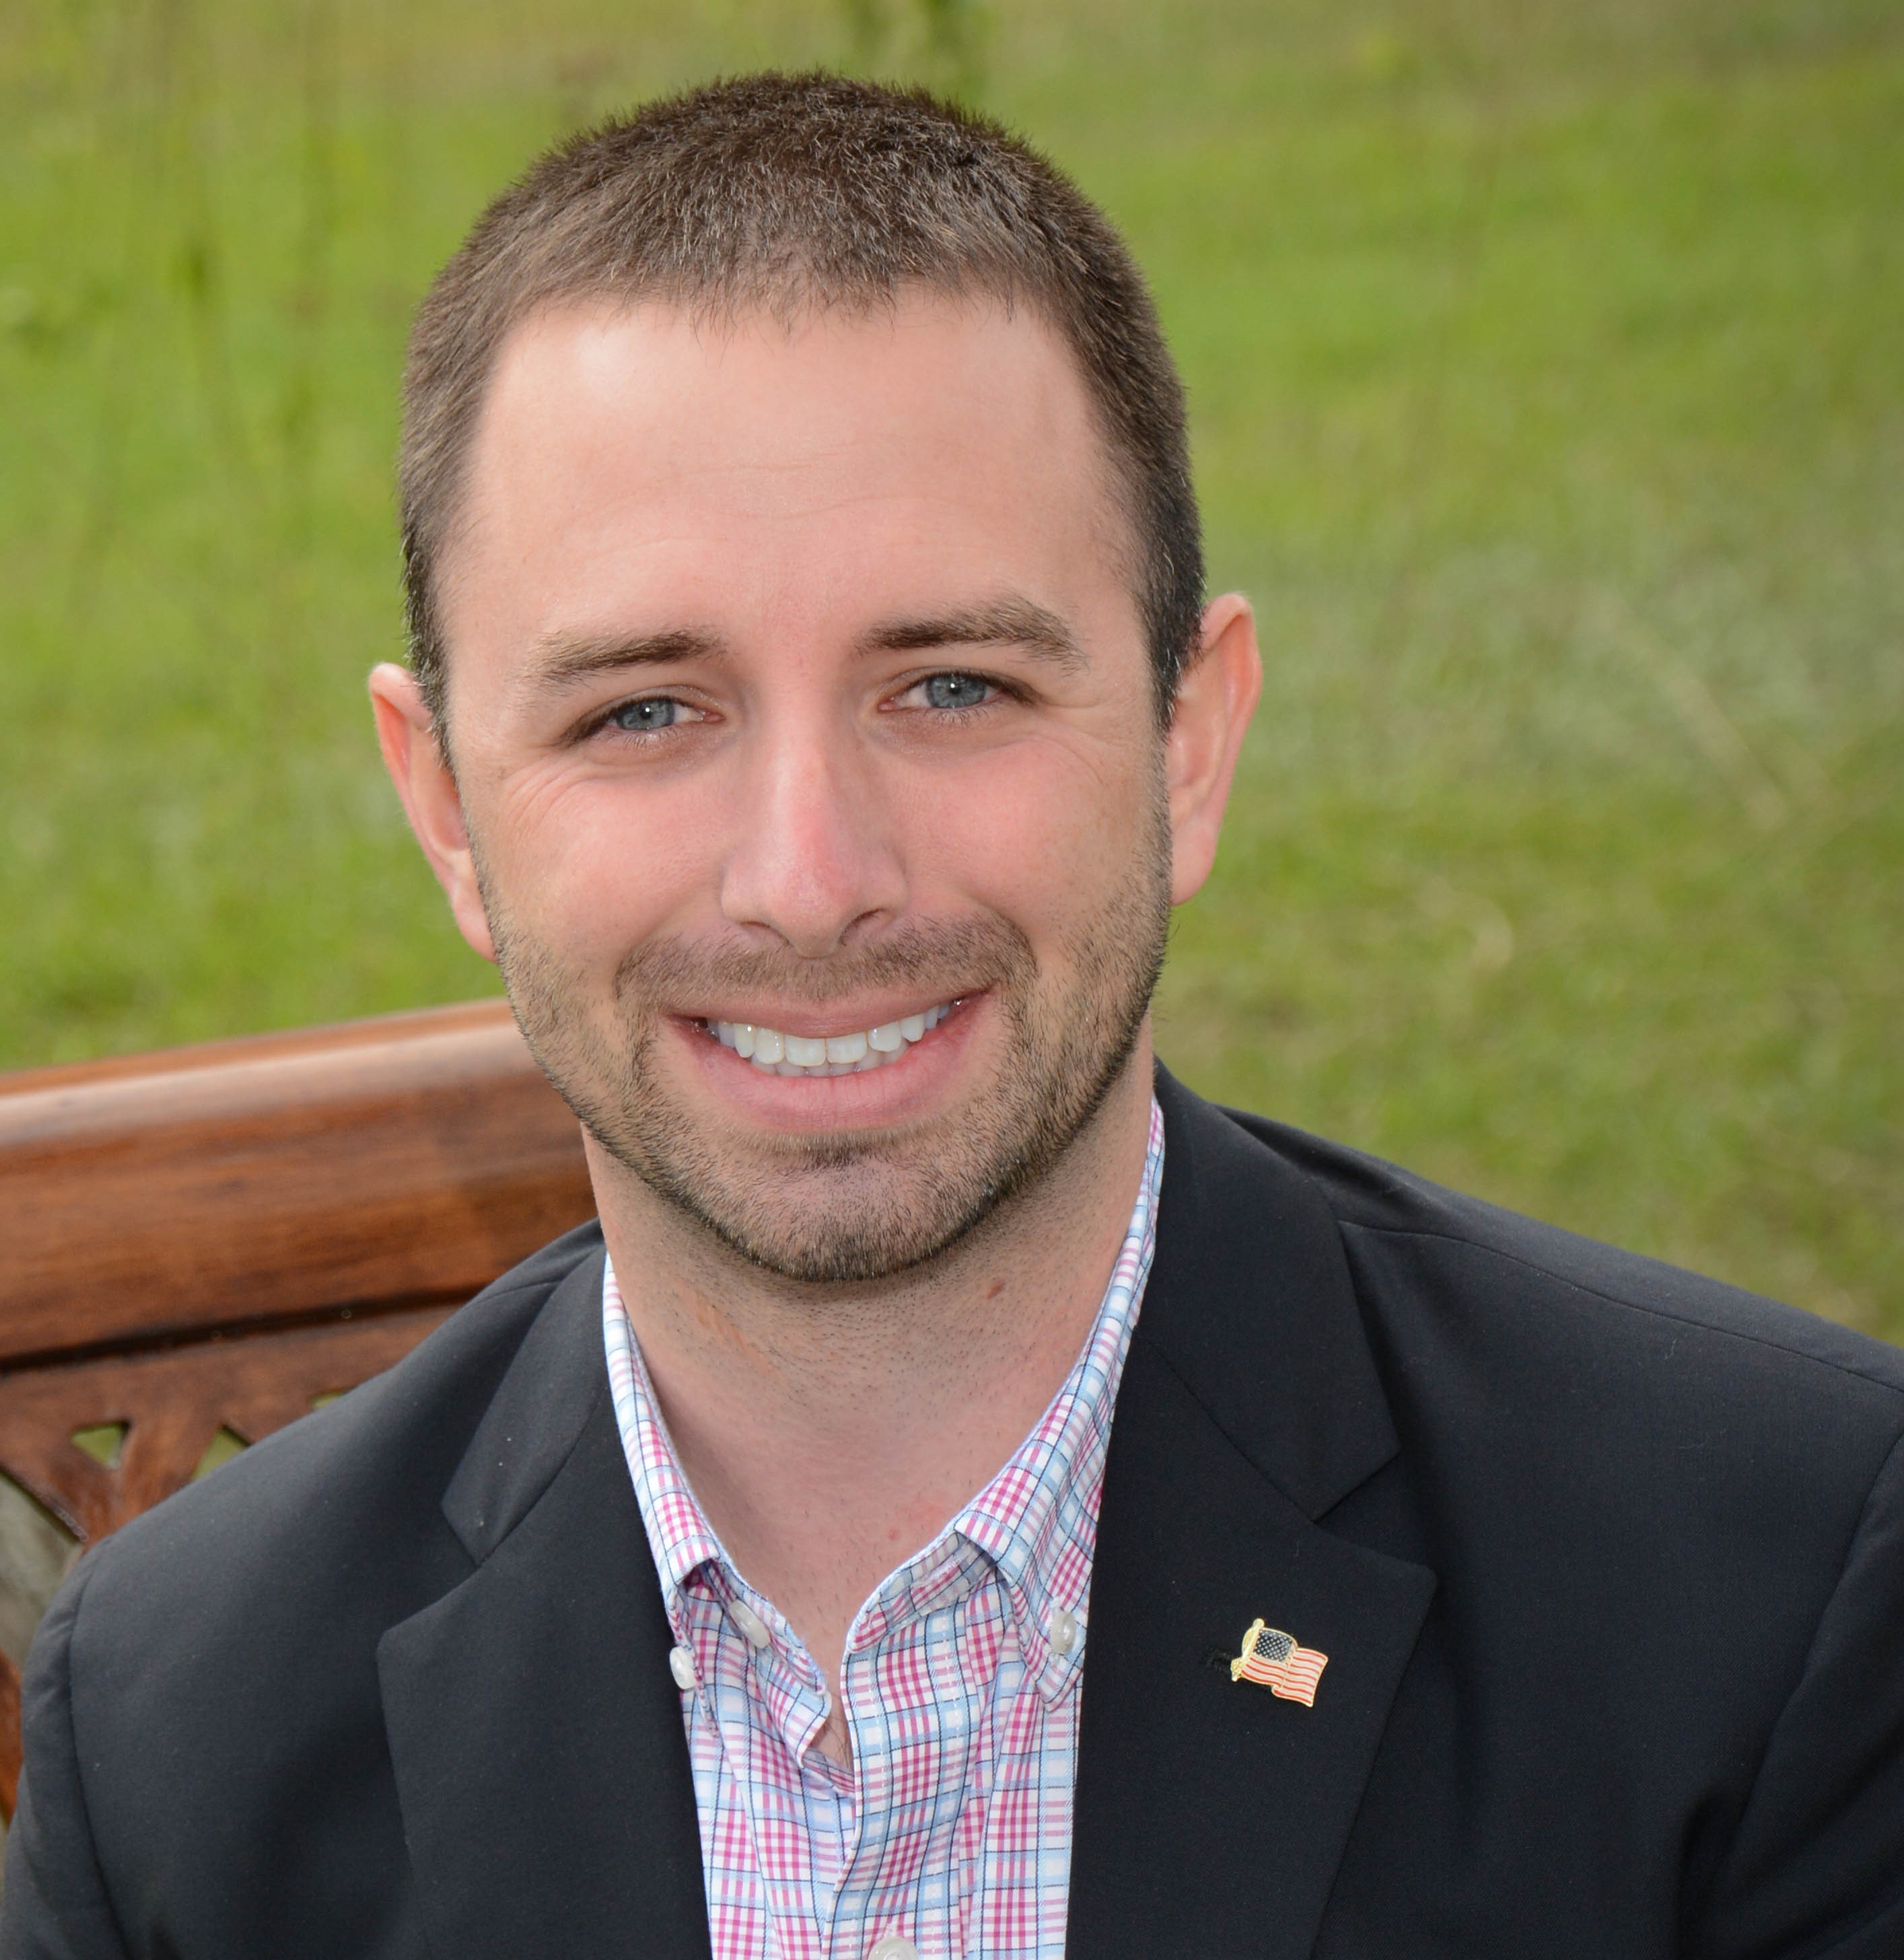 Shawn Boatright, County Administrator